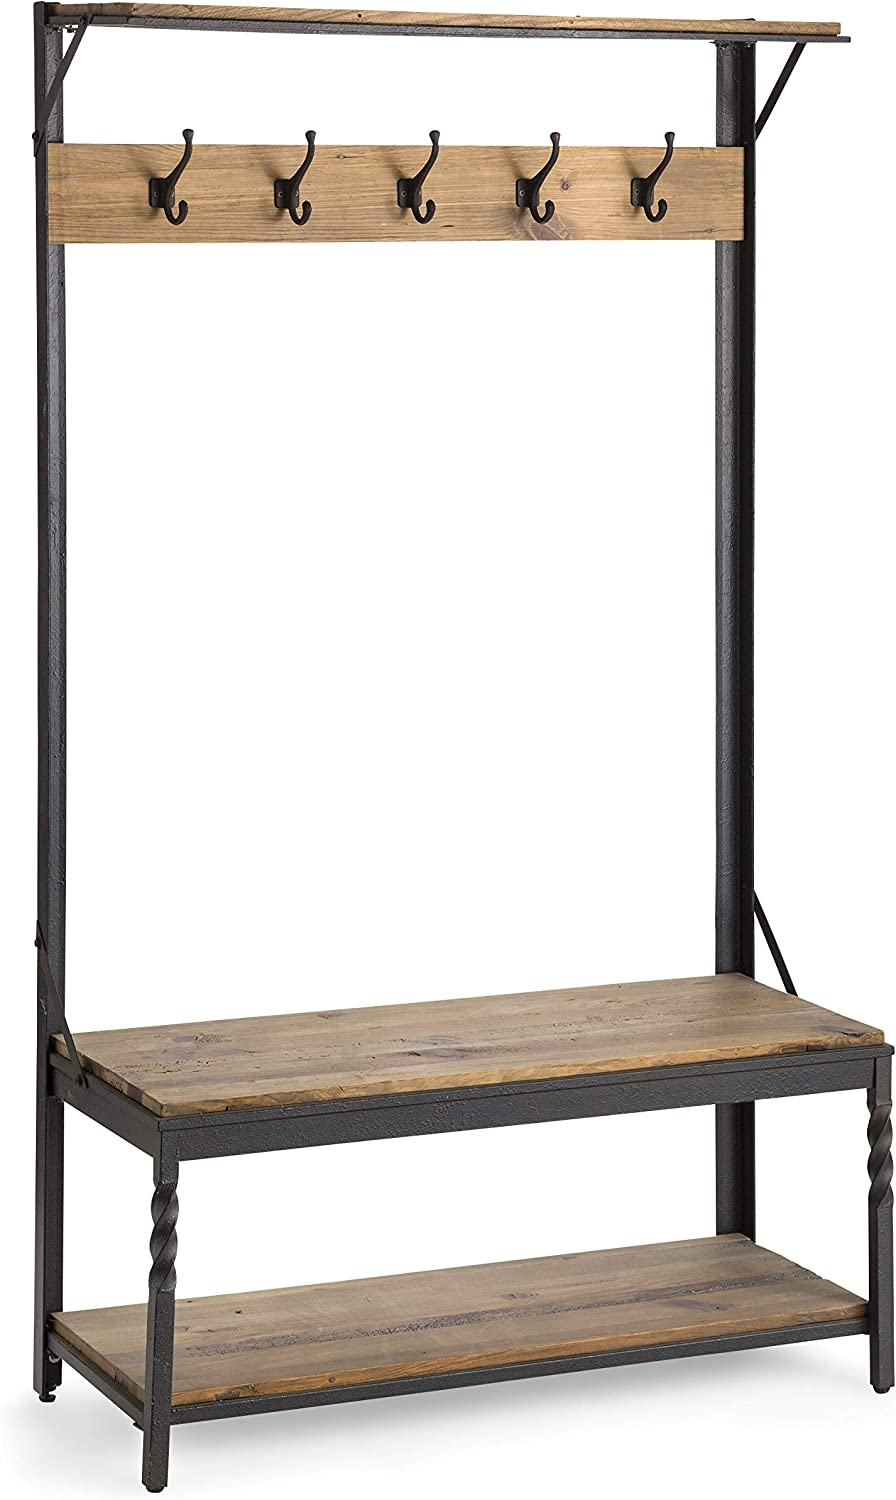 Plow & Hearth Deep Creek Coat Rack Hall Tree with Bench Seat and Five Hanger Hooks with Reclaimed Rustic Wood Surfaces and Metal Frame with Twisted Accents